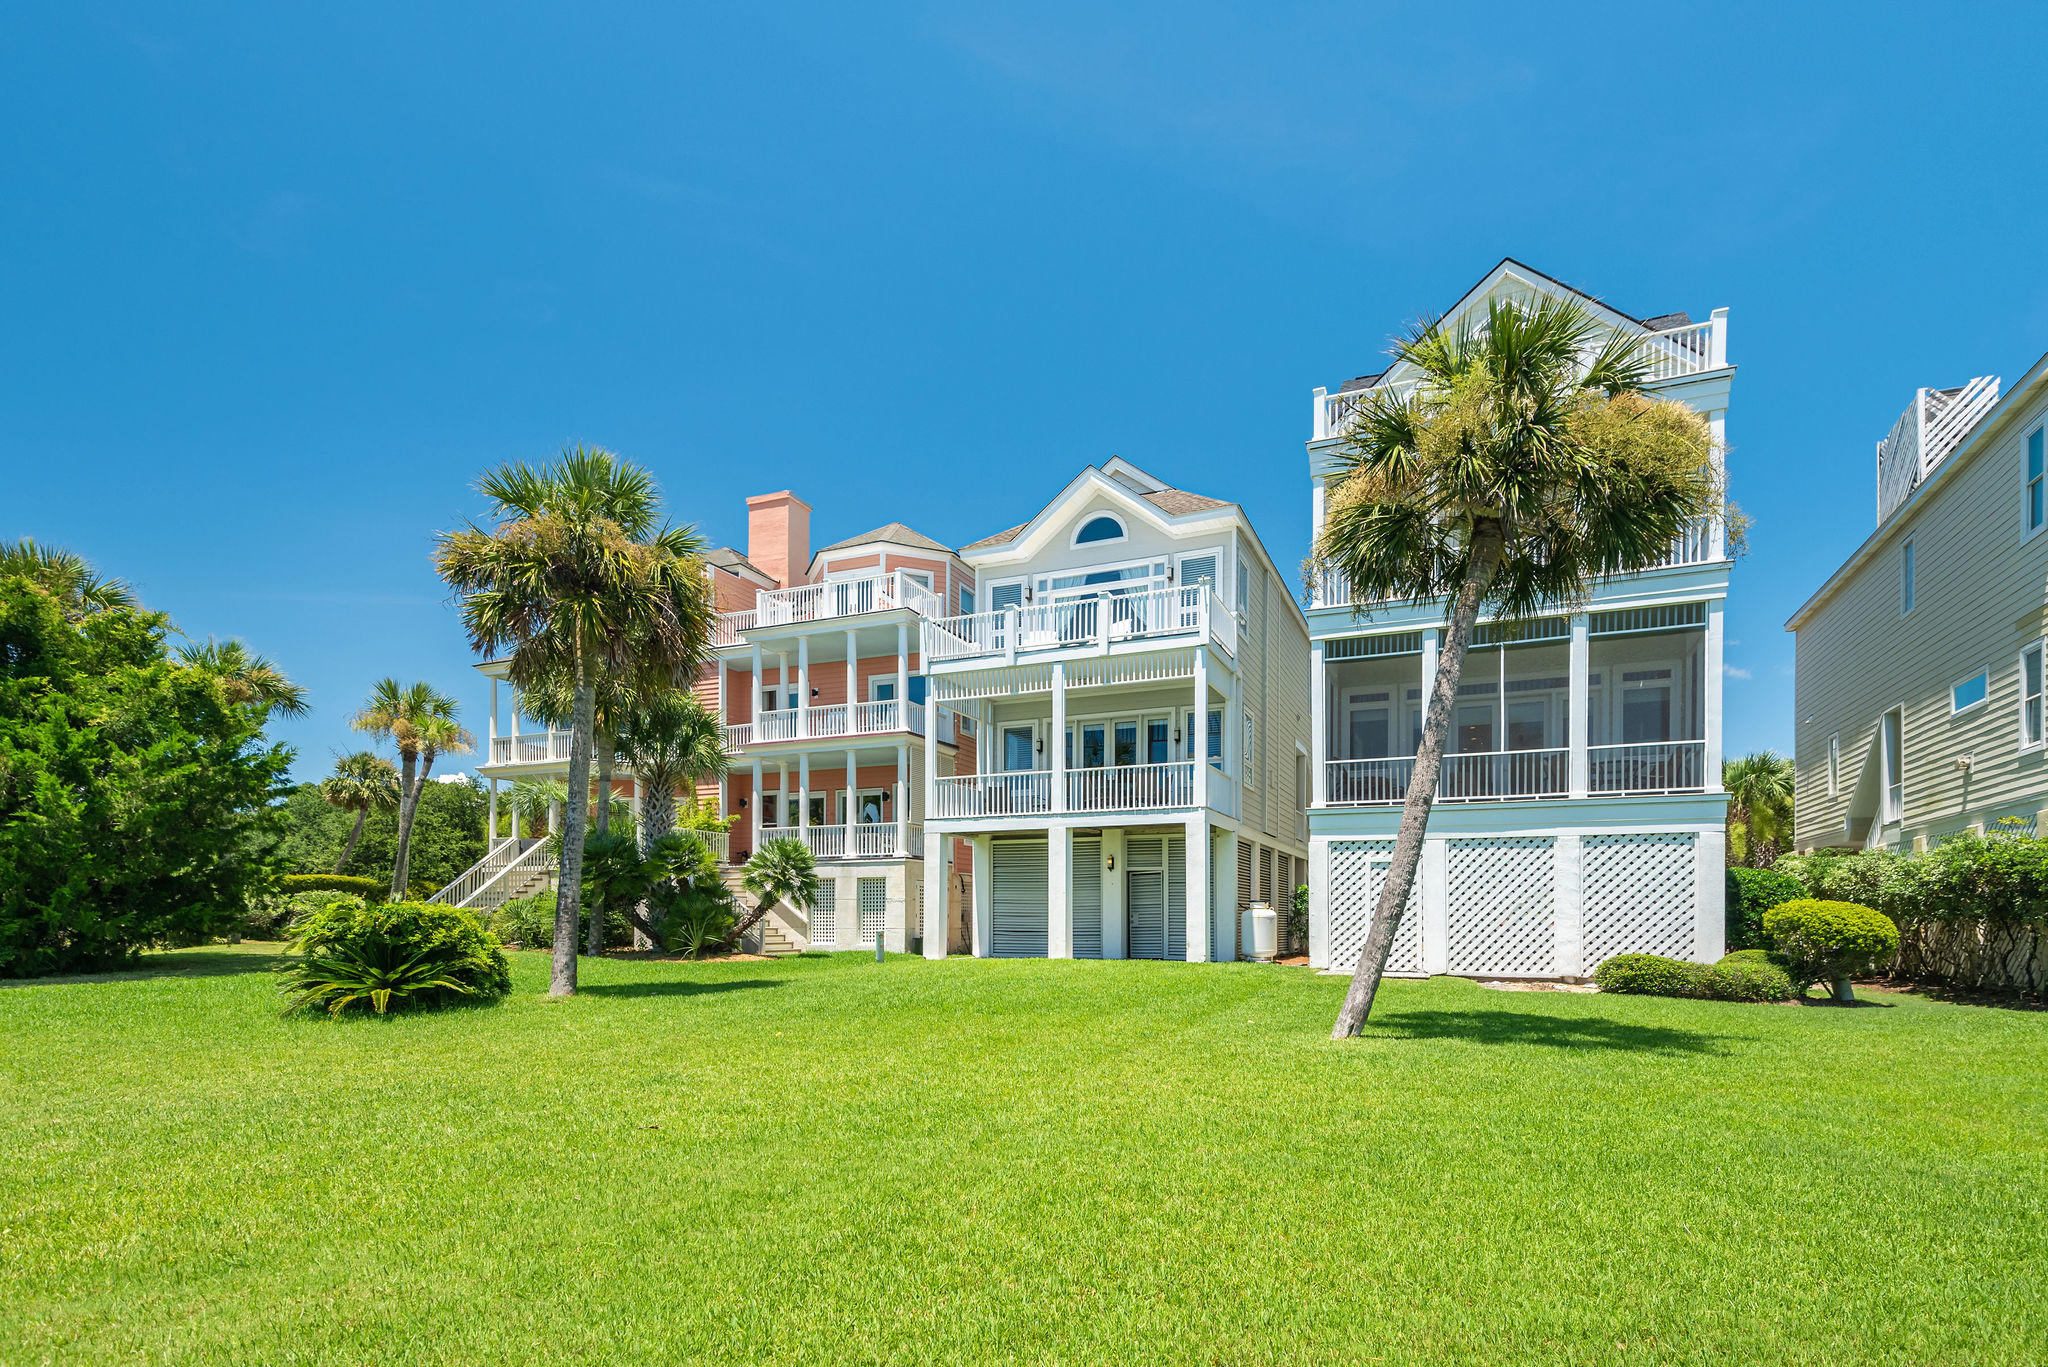 Wild Dunes Homes For Sale - 15 Grand Pavilion, Isle of Palms, SC - 18